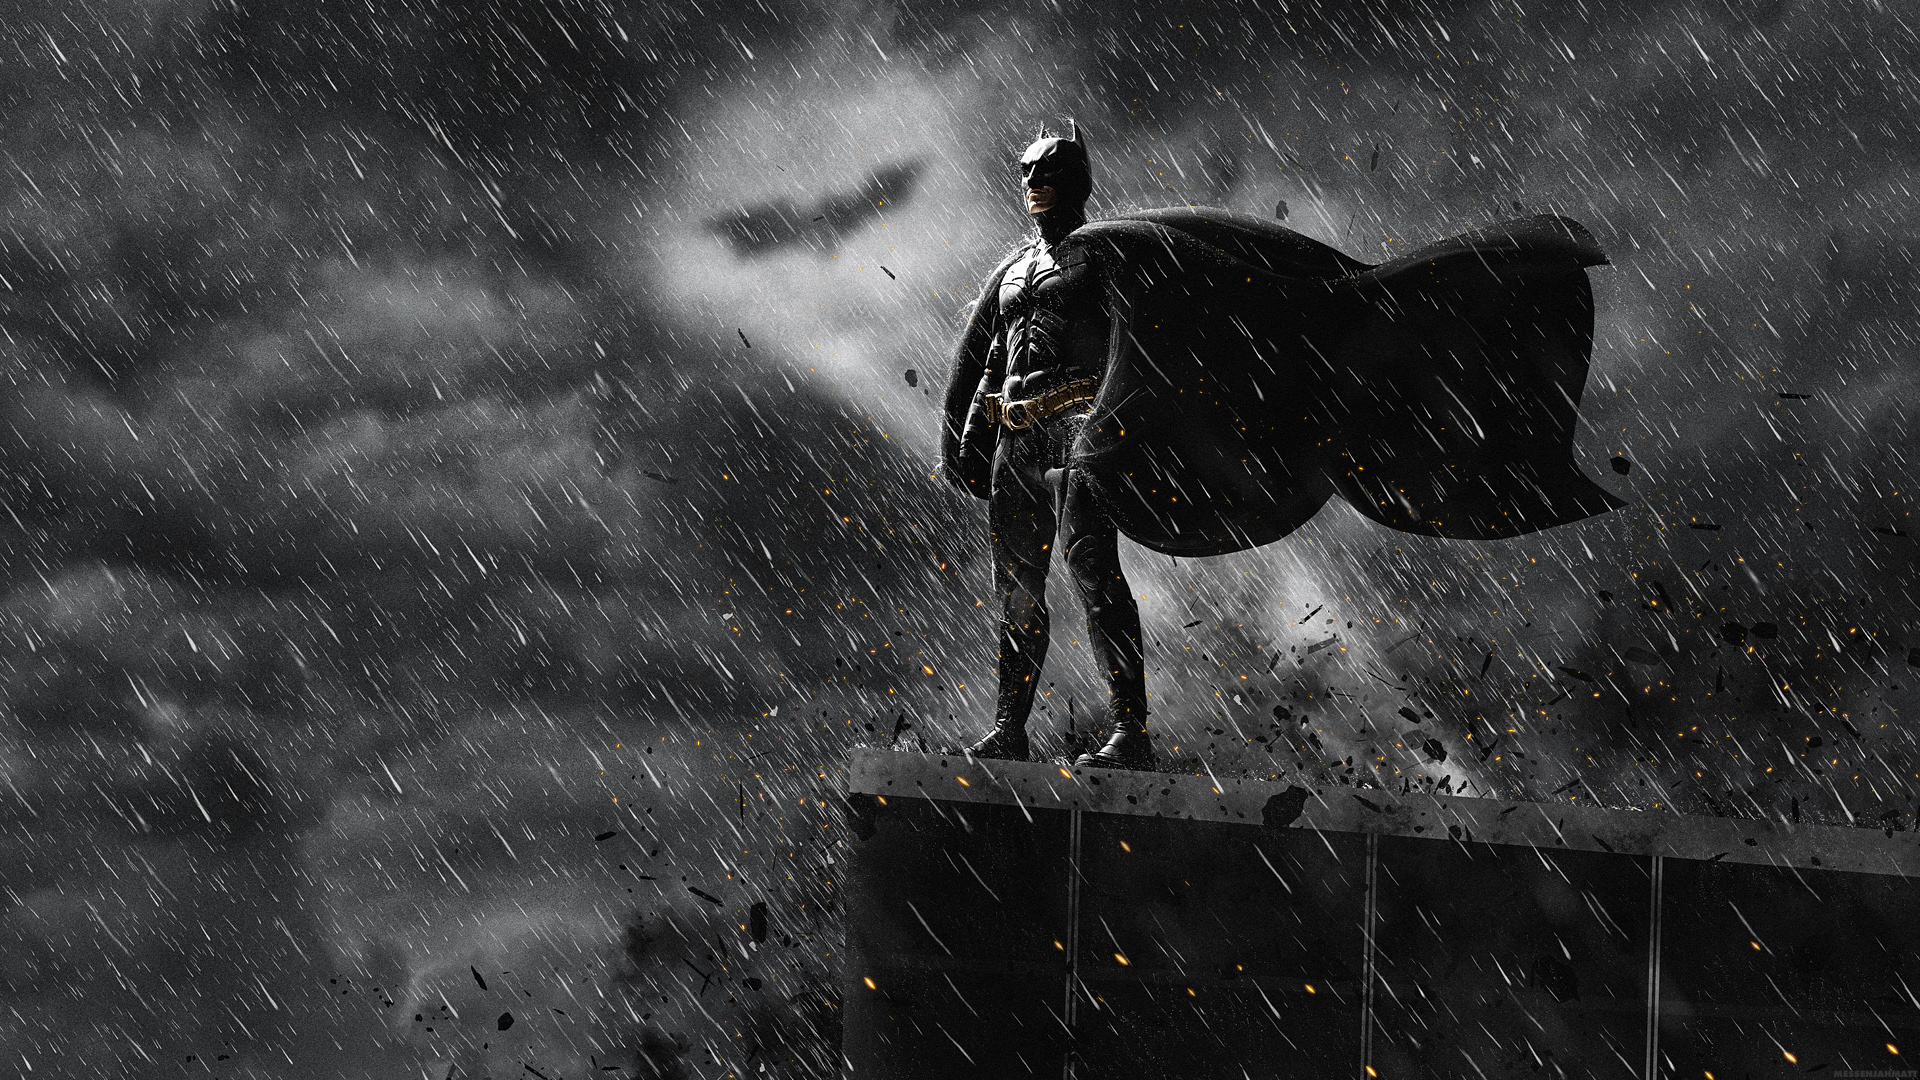 The Dark Knight Rises Wallpaper Set 2 171 Awesome Wallpapers 1920x1080